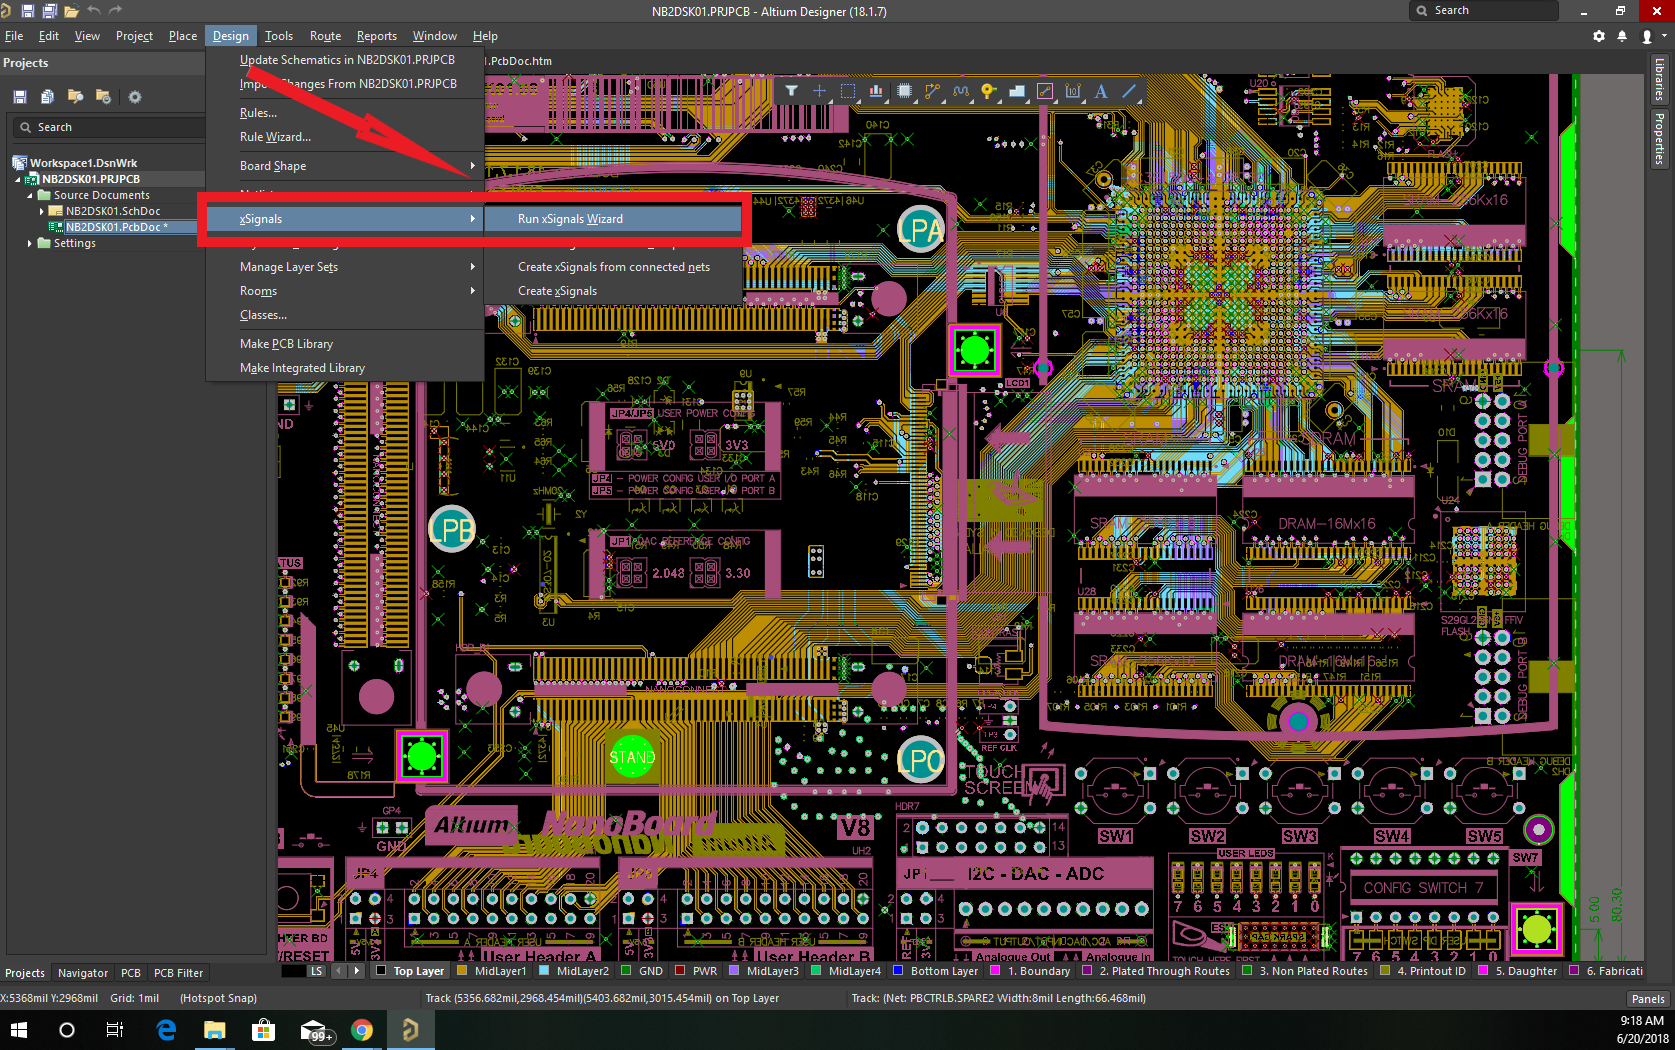 Altium Designer 18 intelligent layout